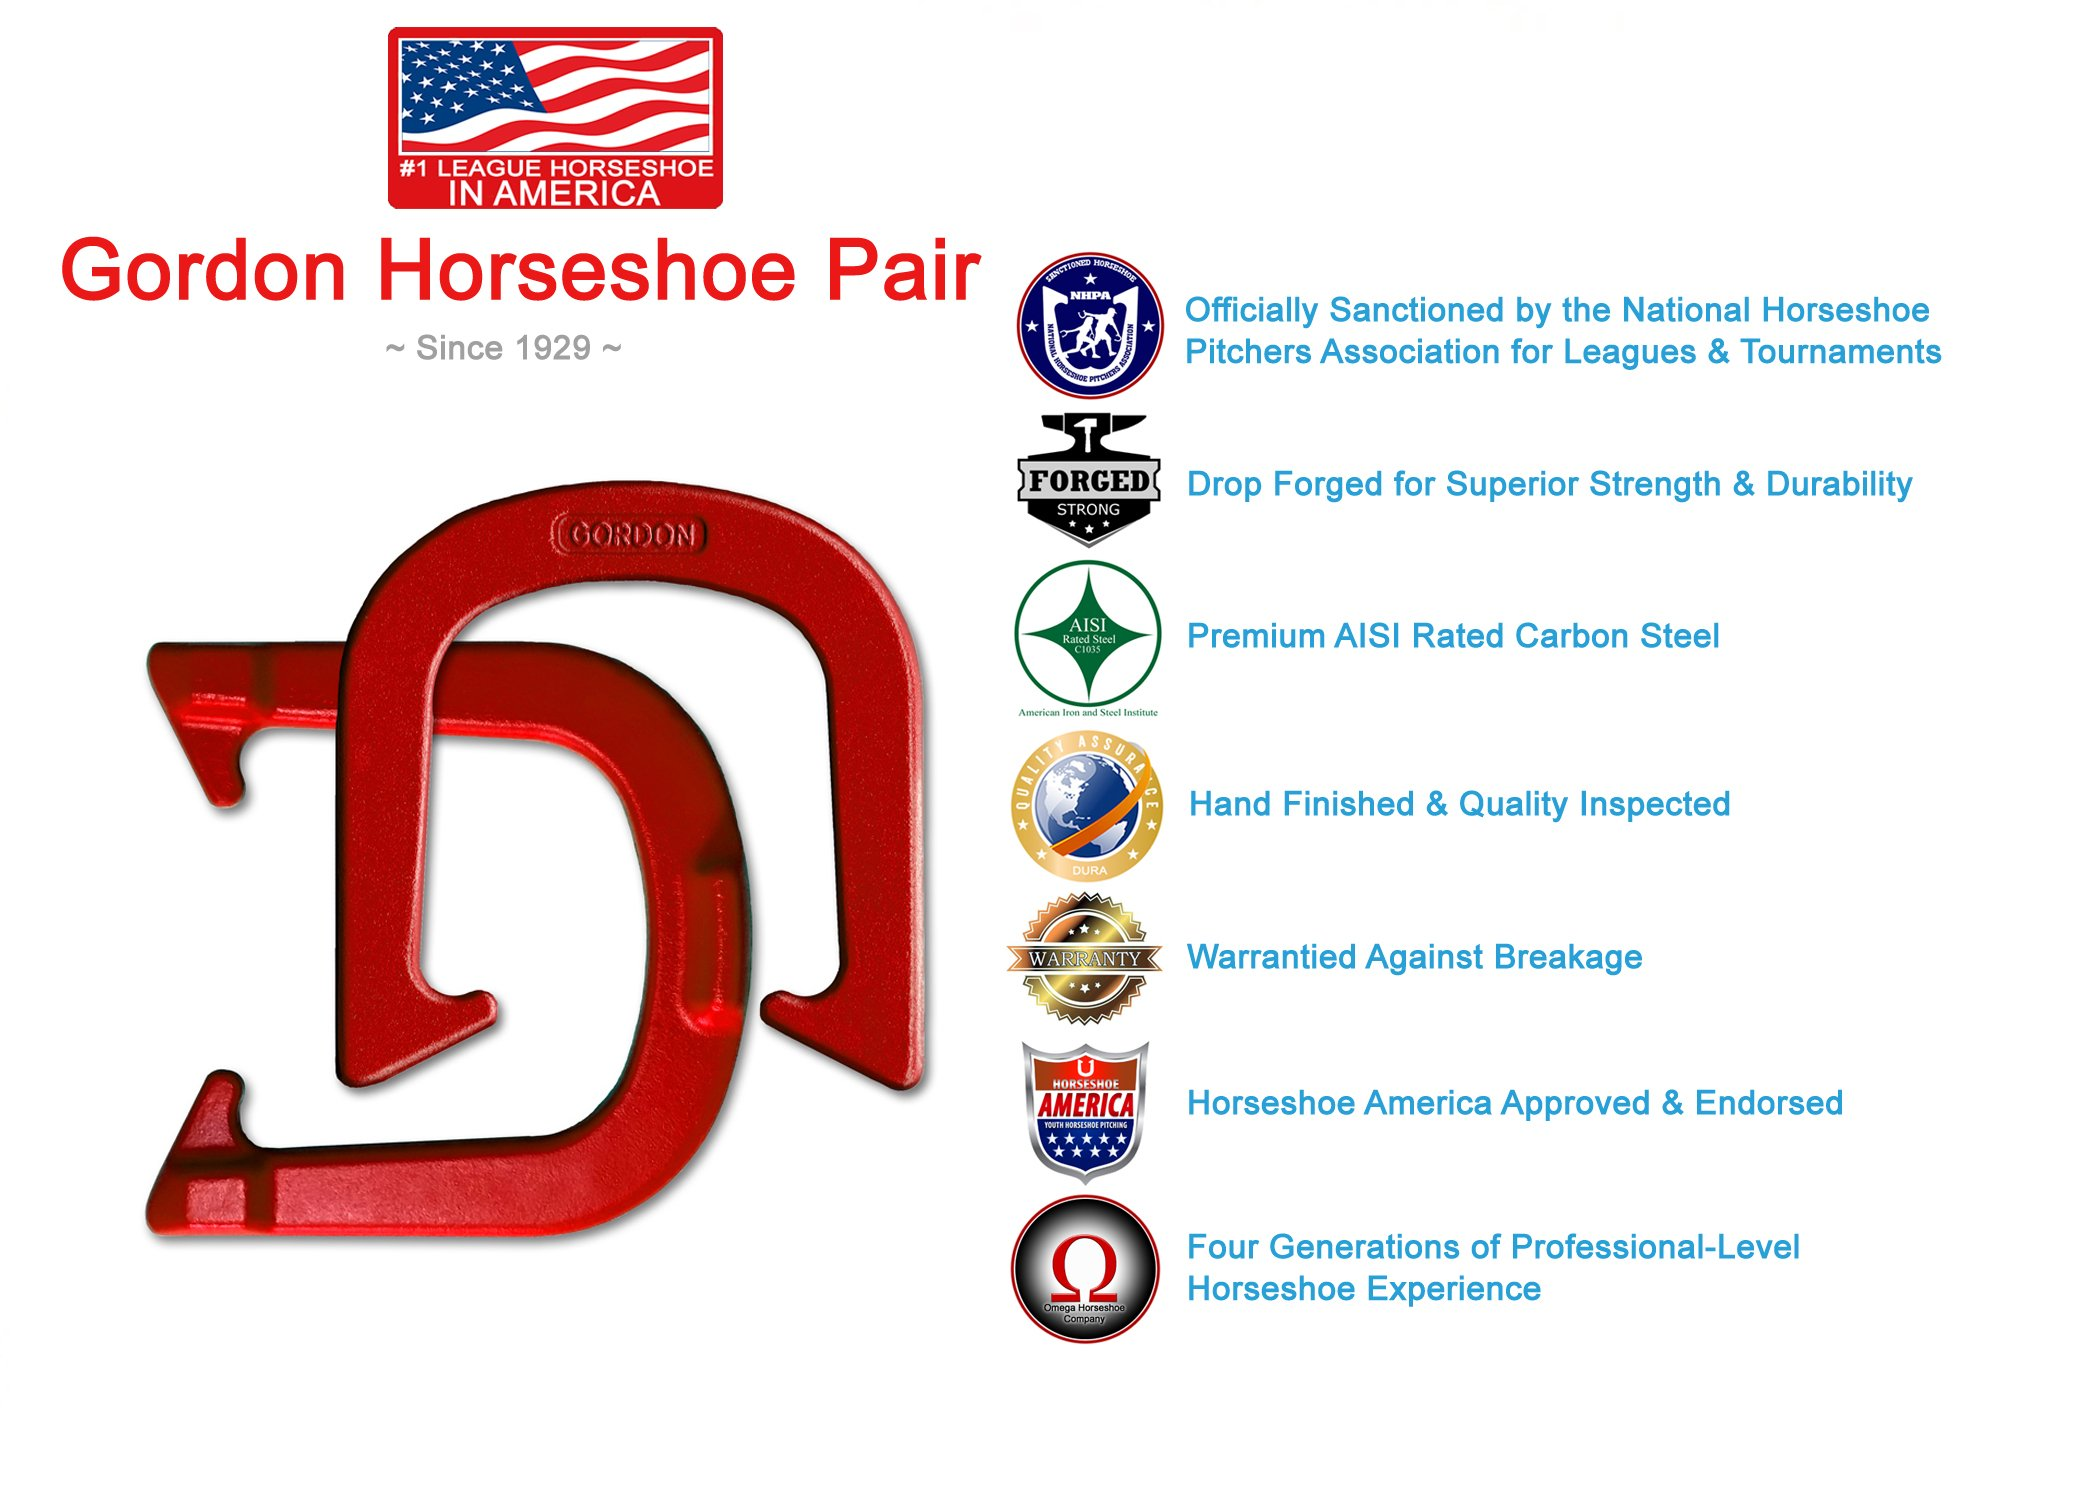 Gordon Professional Pitching Horseshoes - NHPA Sanctioned for Tournament Play - Drop Forged Construction - One Pair (2 Shoes) - Red Finish - Medium Weight